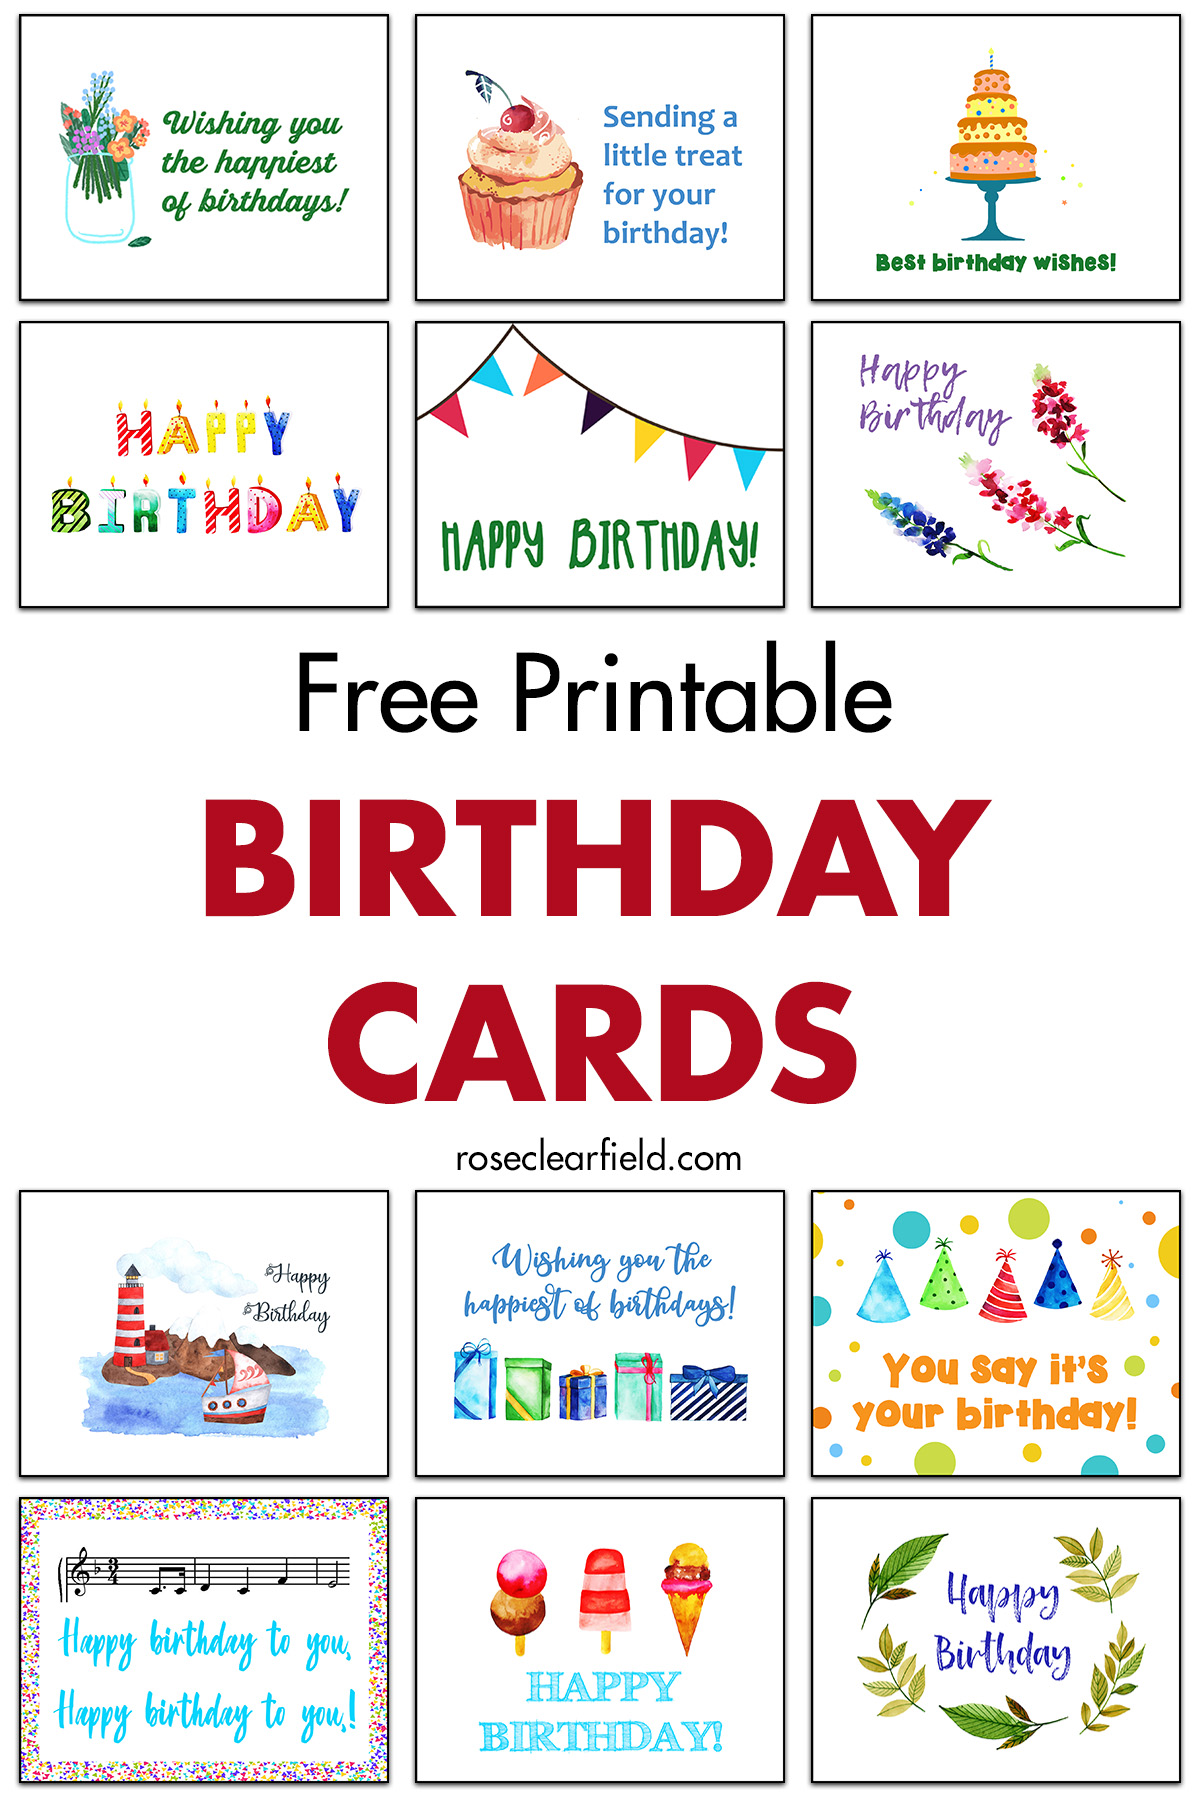 Free Printable Birthday Cards Rose Clearfield